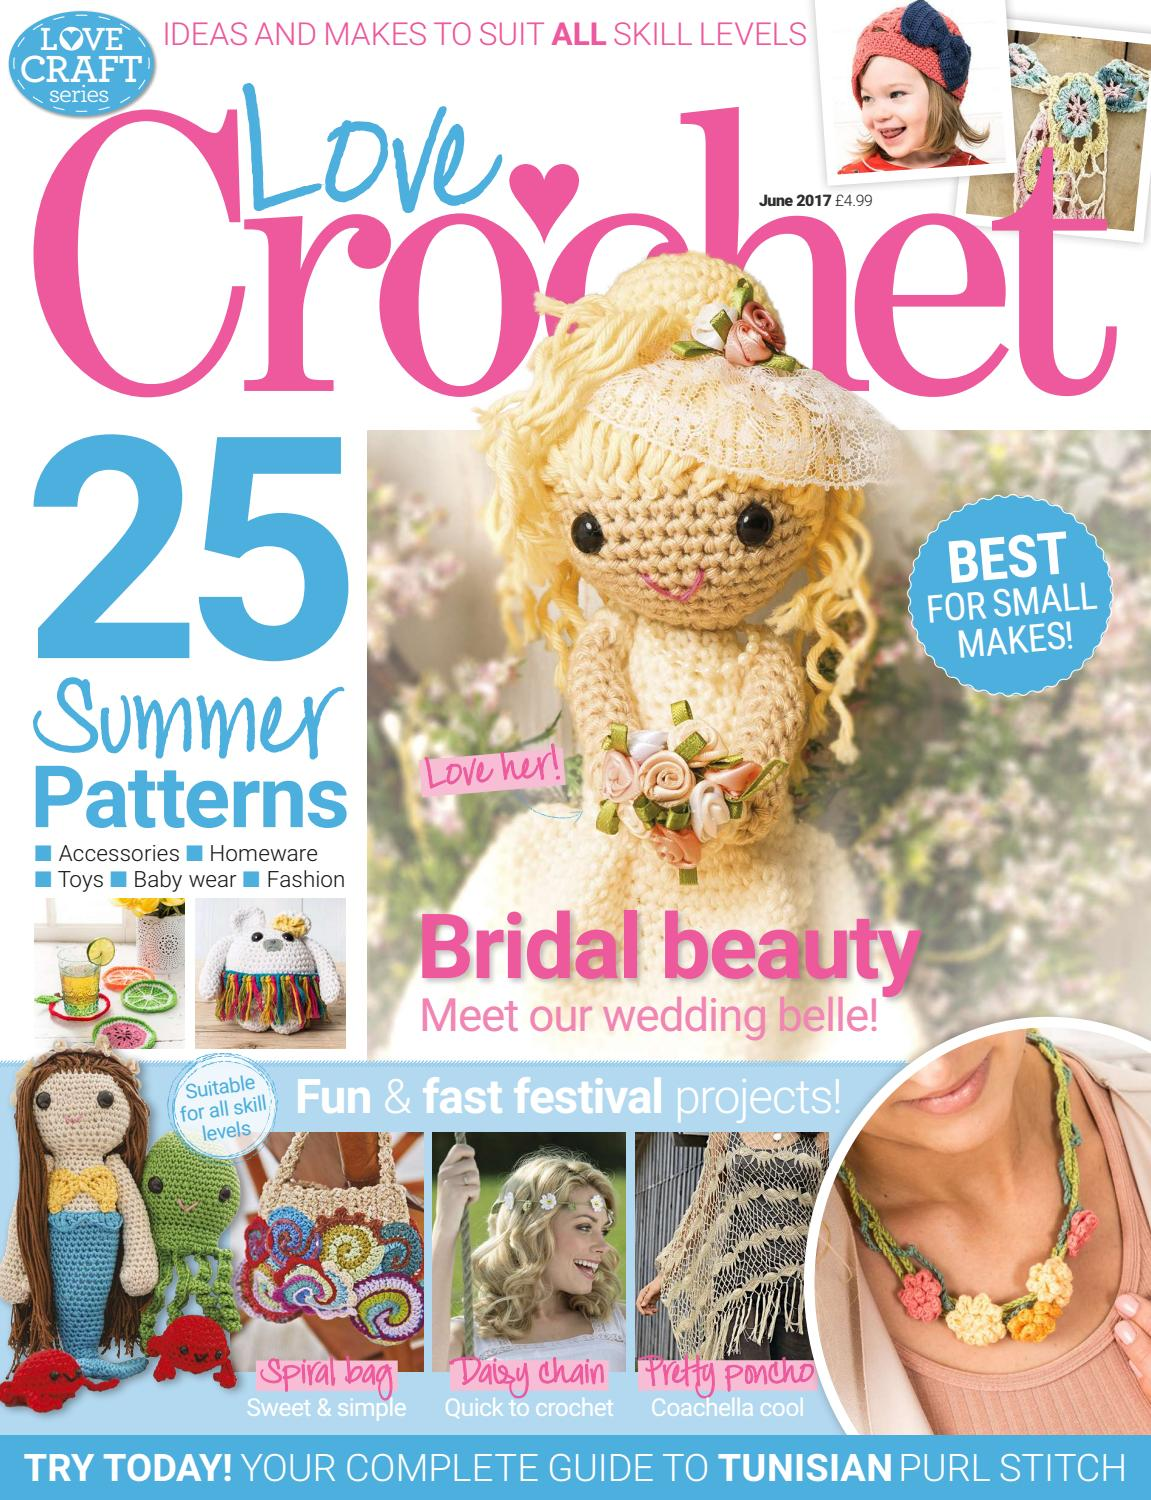 Love Crochet June 2017 Sampler By Immediate Media Co Magazines Issuu